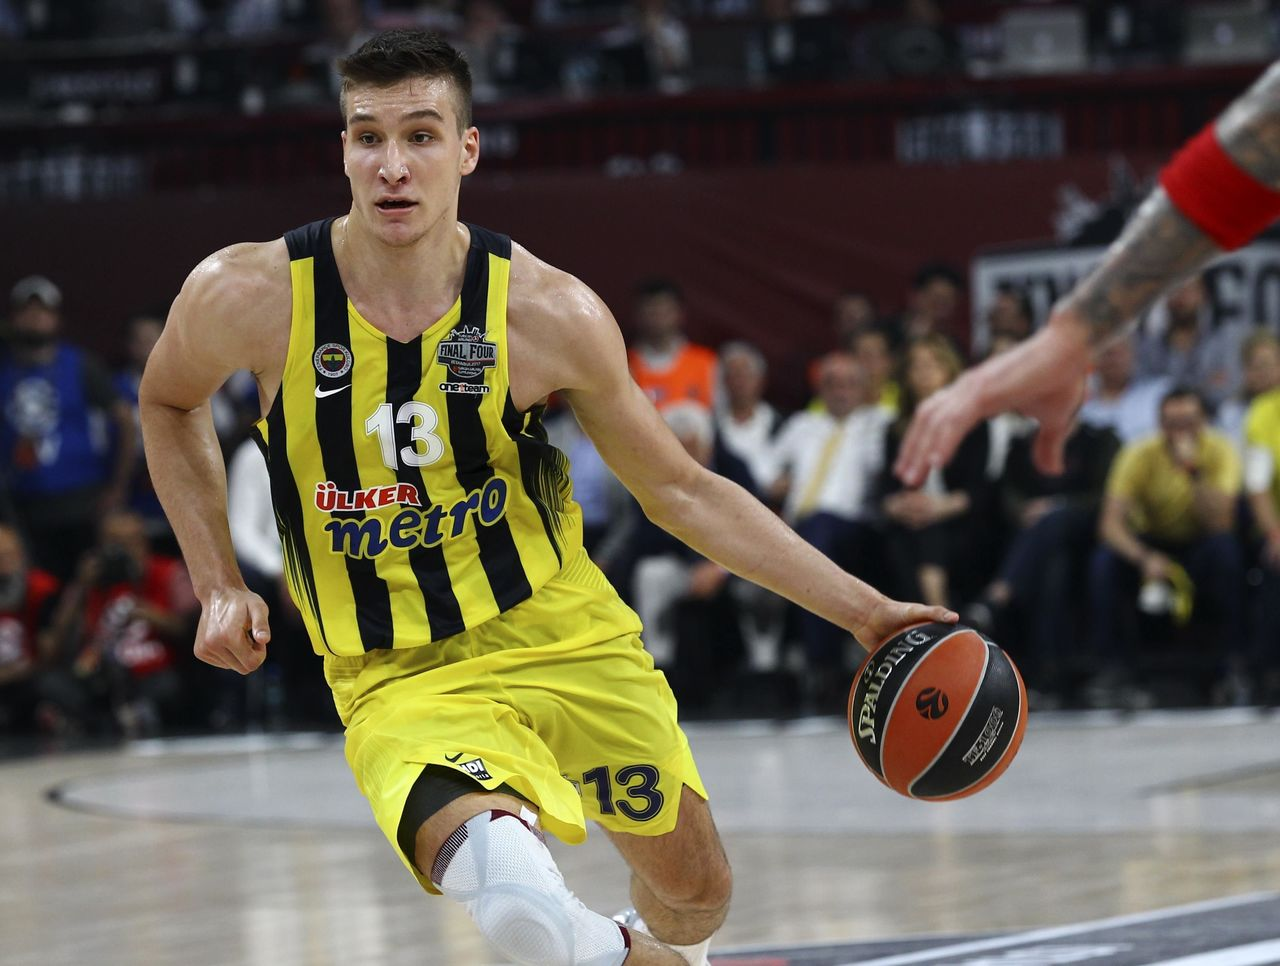 Cropped 2017 05 21t191901z 1755186993 up1ed5l1hno9b rtrmadp 3 basketball euroleague